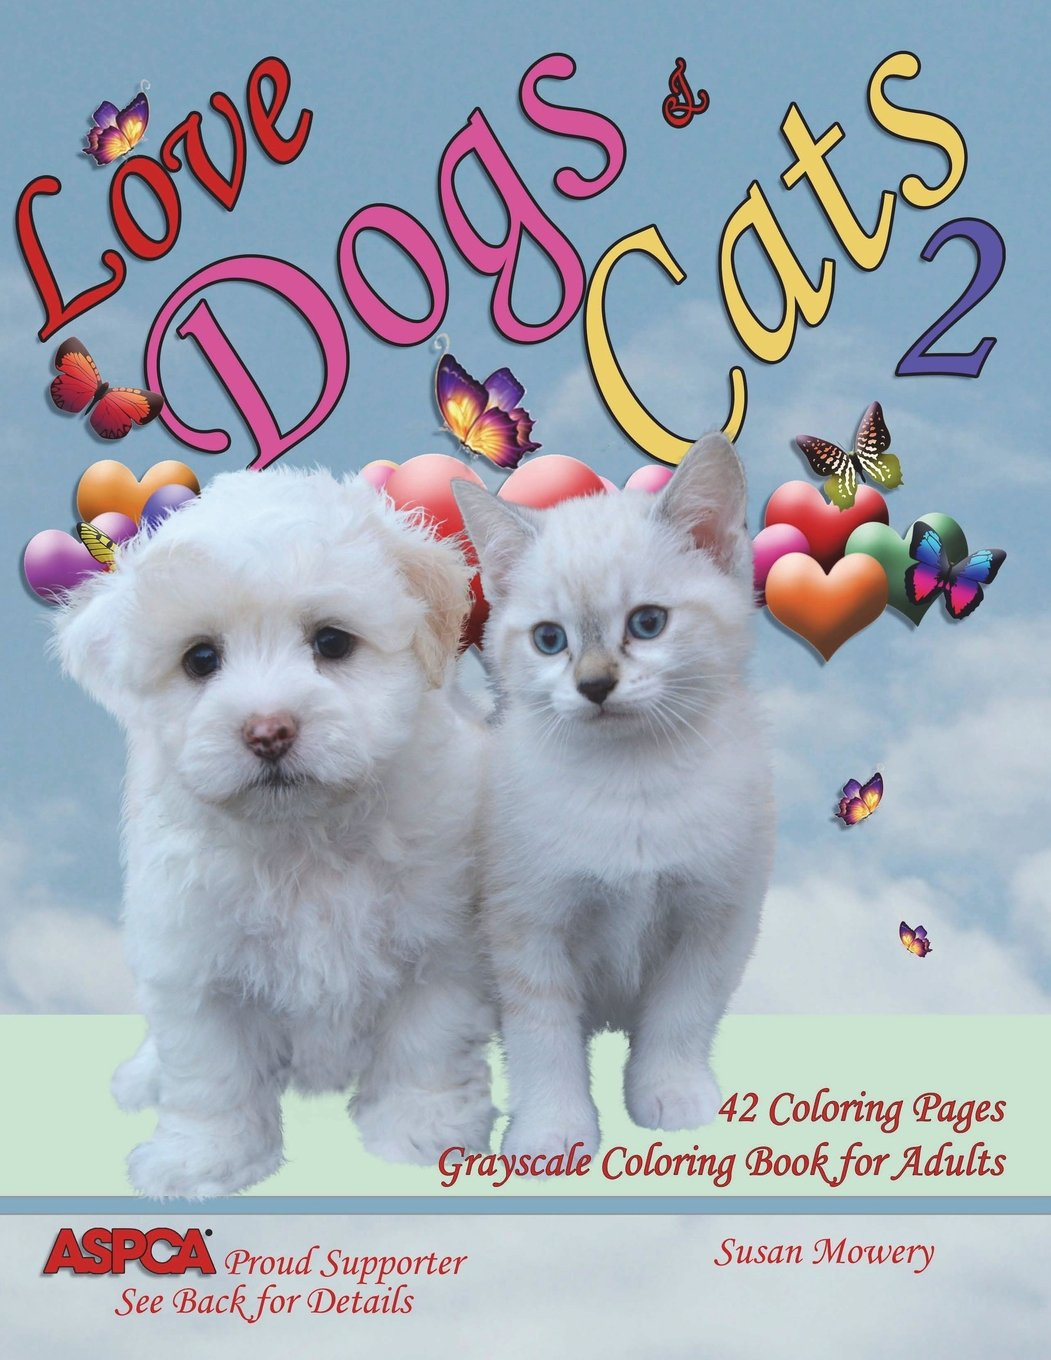 Amazon Com Love Dogs Cats 2 Grayscale Coloring Book For Adults 42 Grayscale Coloring Pages Of Dogs Cats Puppies And Kittens 9781721973125 Mowery Susan Books